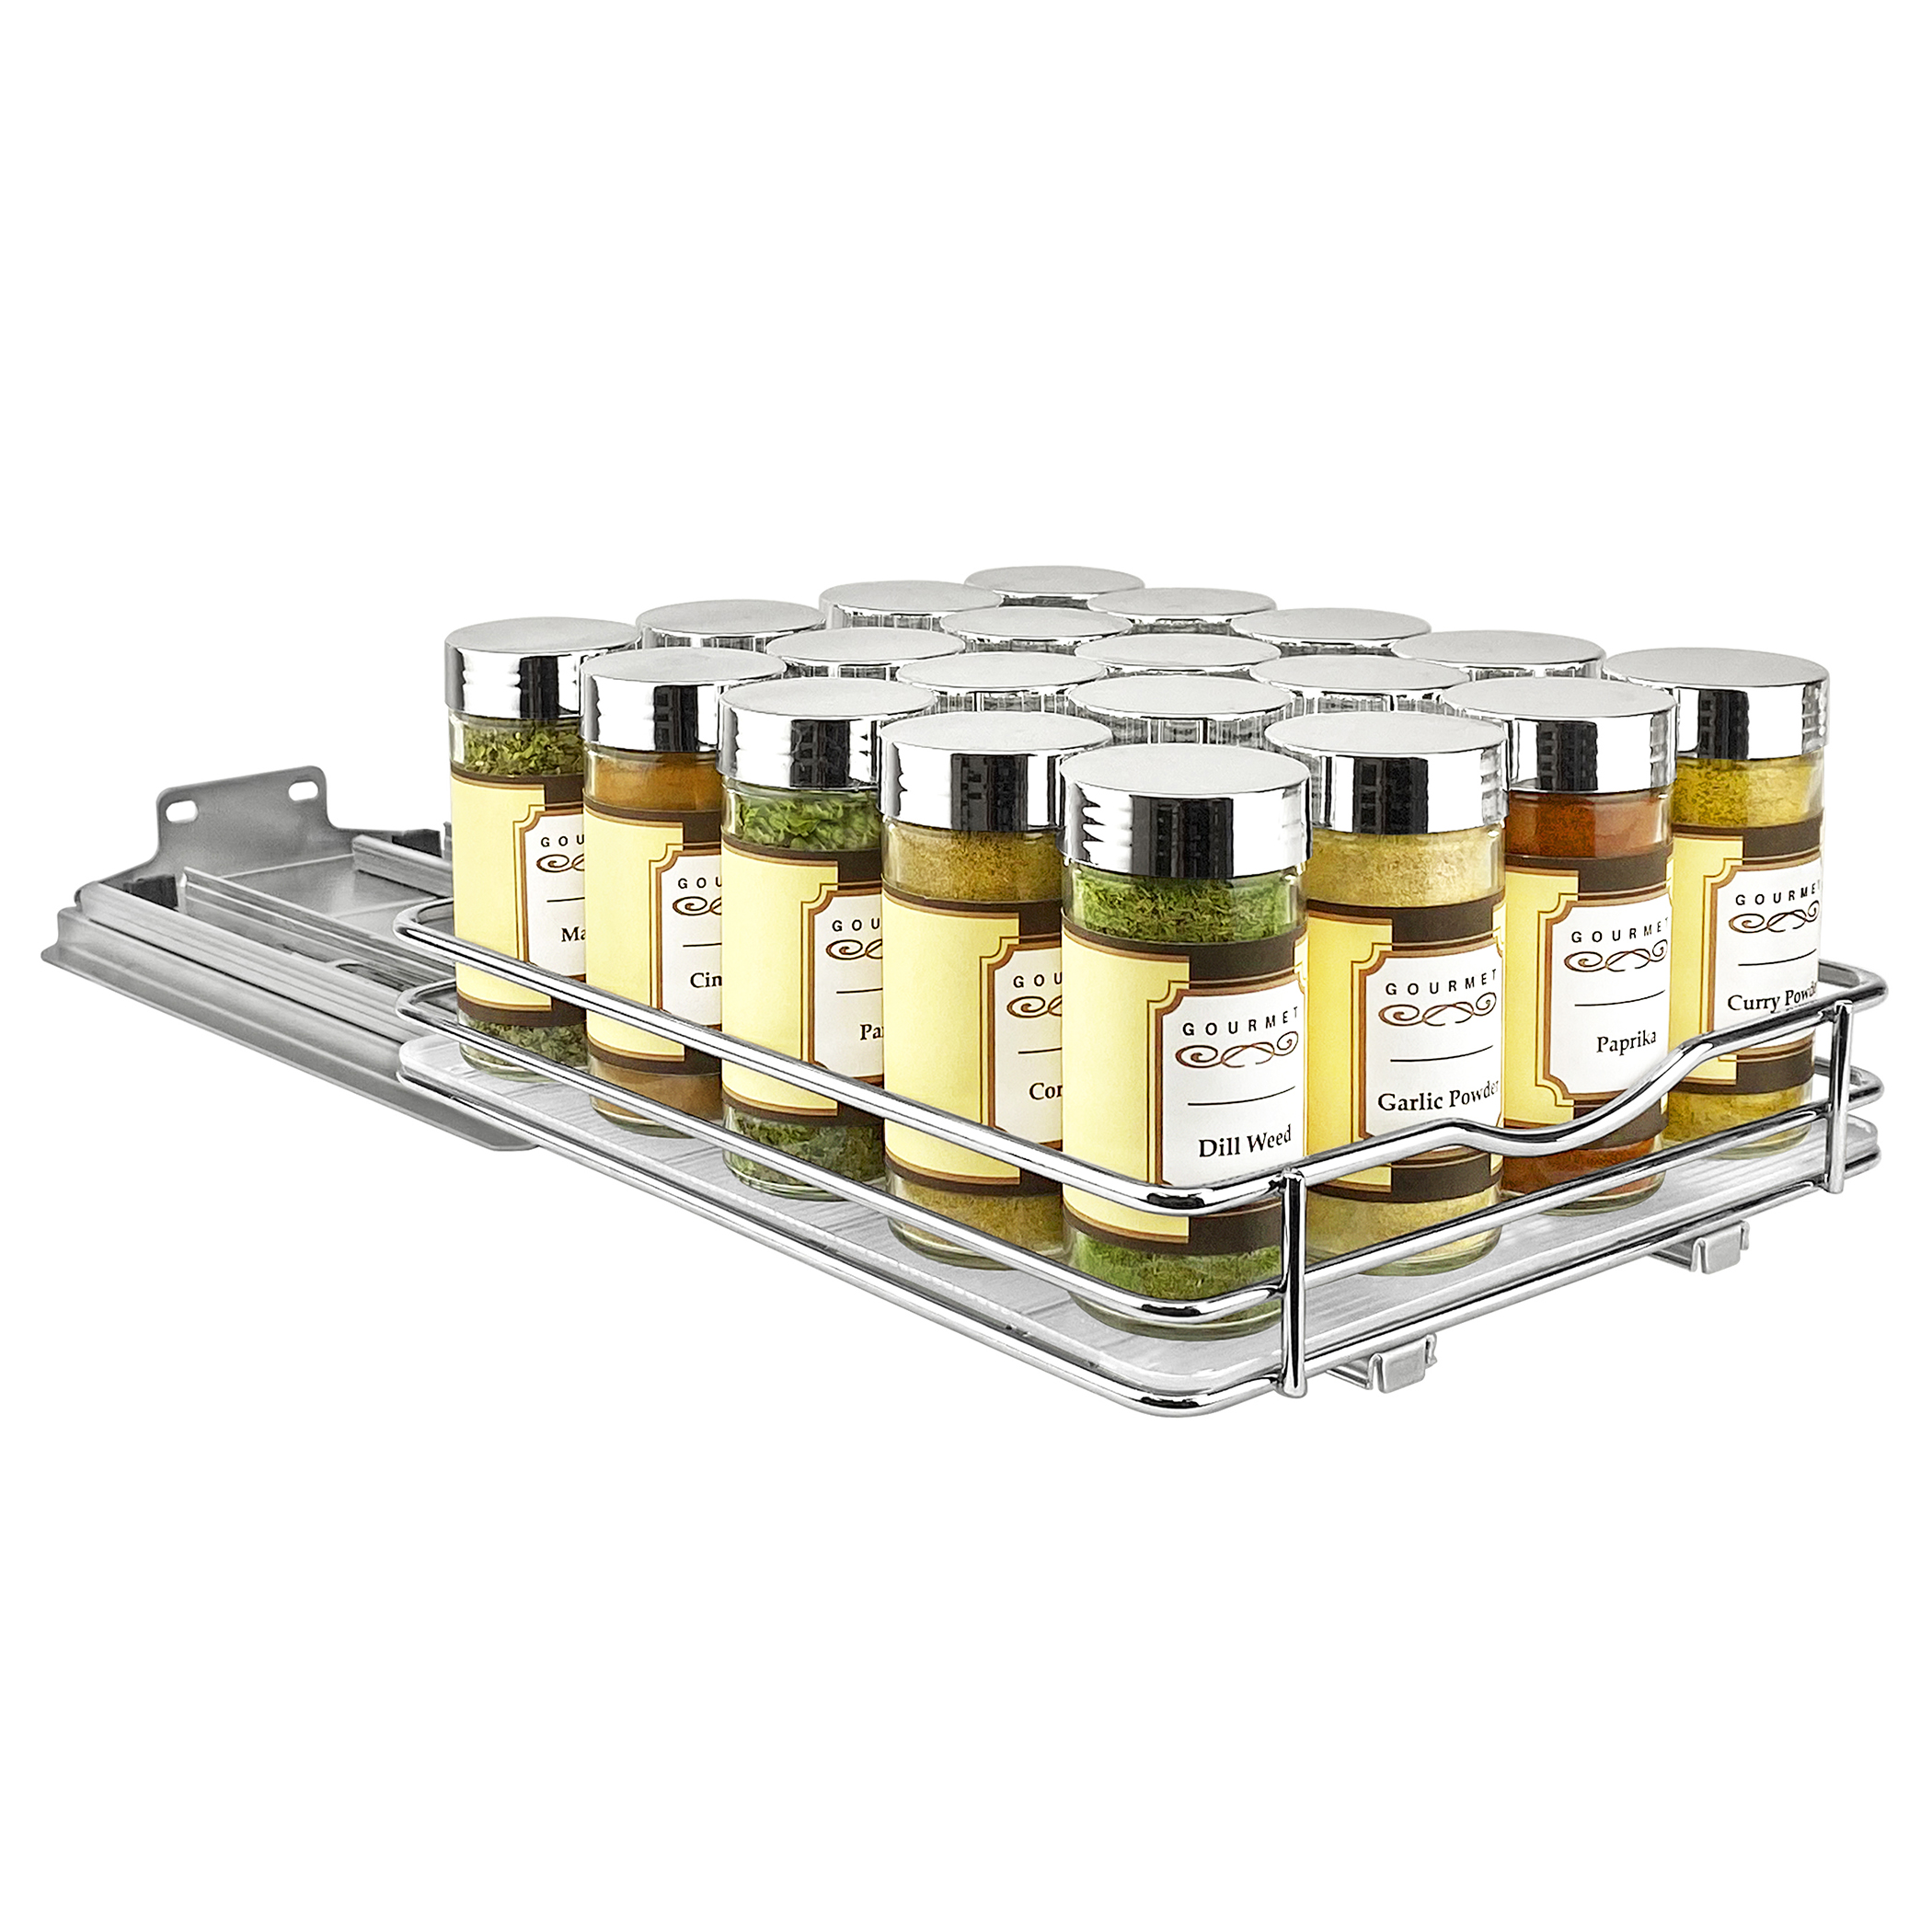 430721 professional slide out spice organizer